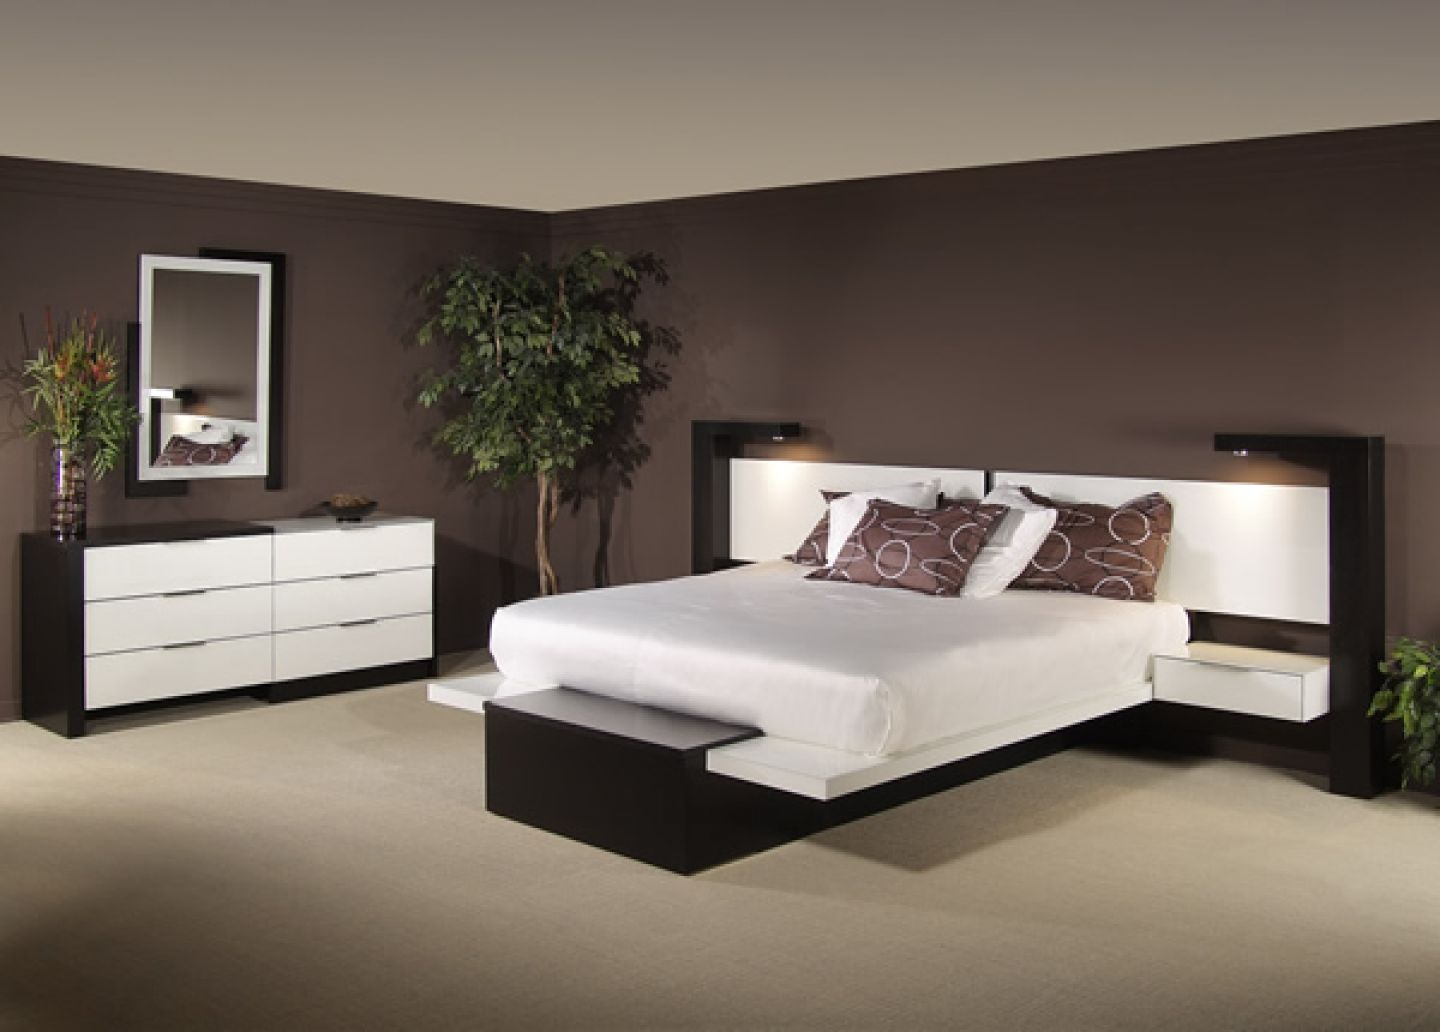 designer home furnishings. Contemporary Furniture Designs Ideas  Bedroom furniture